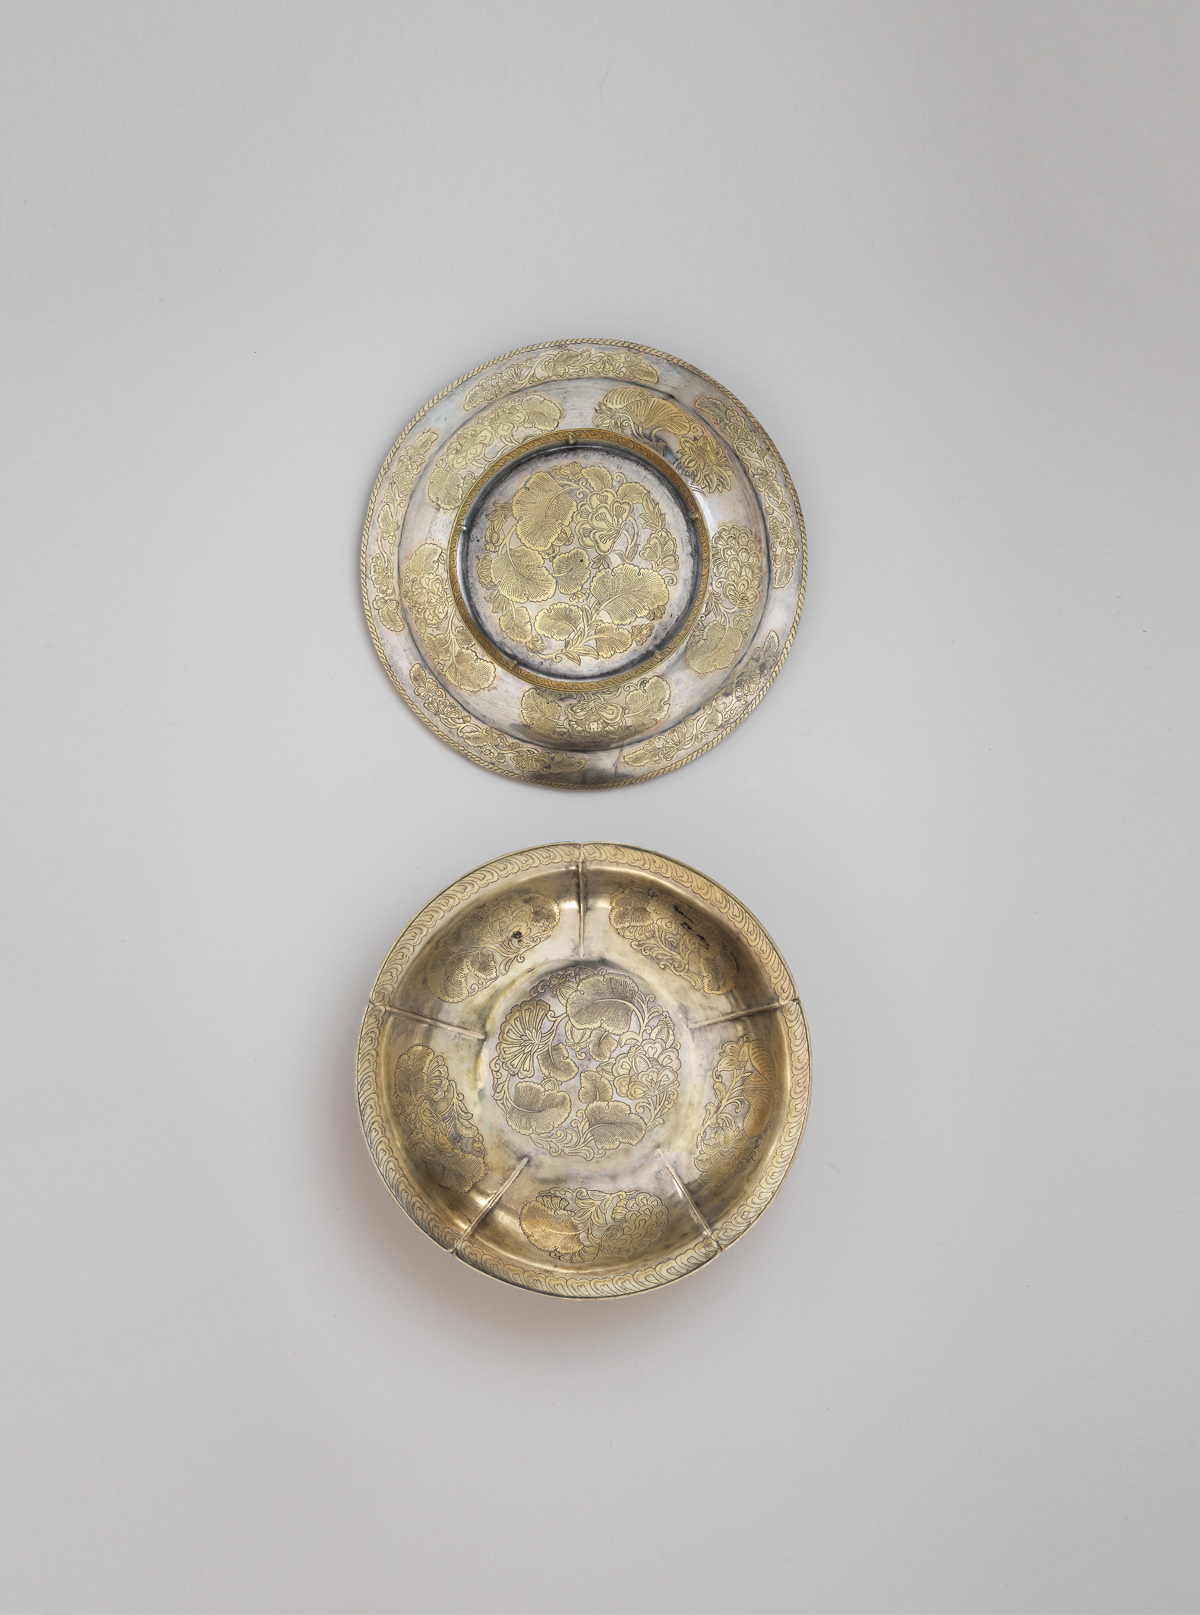 Gilt silver bowl and cover